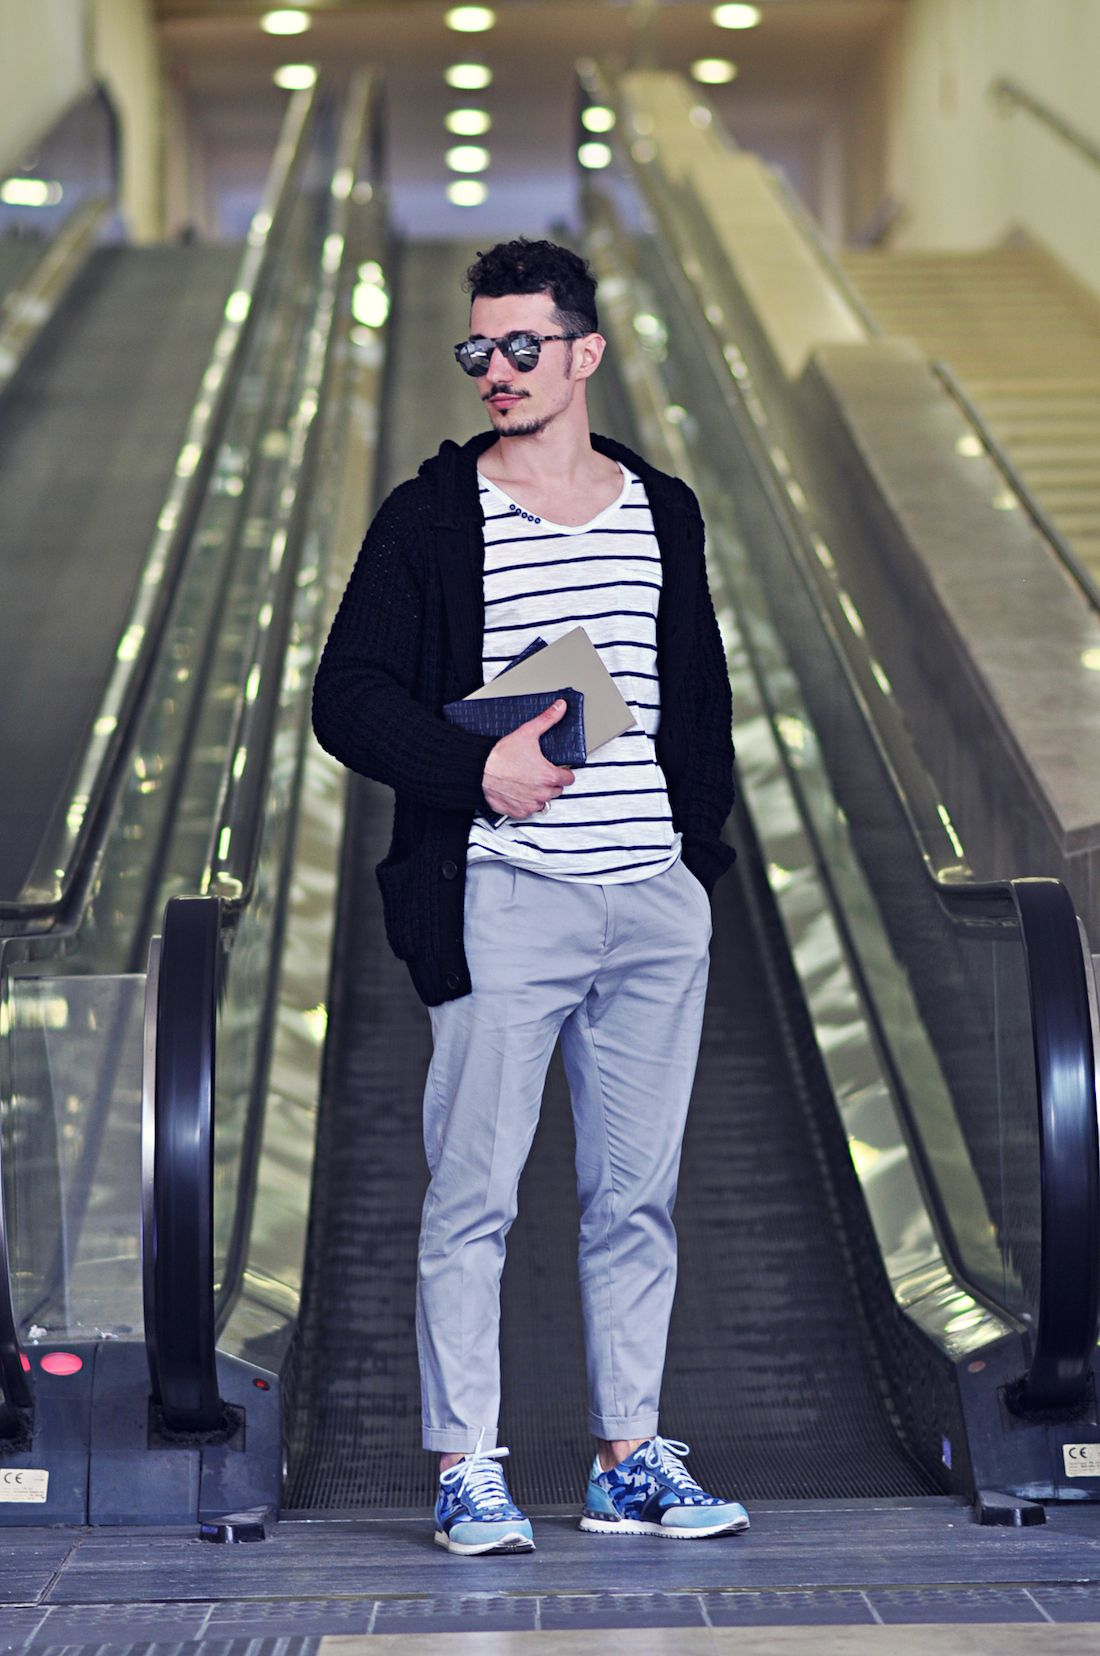 Black t shirt with dark blue jeans - Men S Black Shawl Cardigan White And Black Horizontal Striped V Neck T Shirt Grey Chinos Blue Camouflage Athletic Shoes